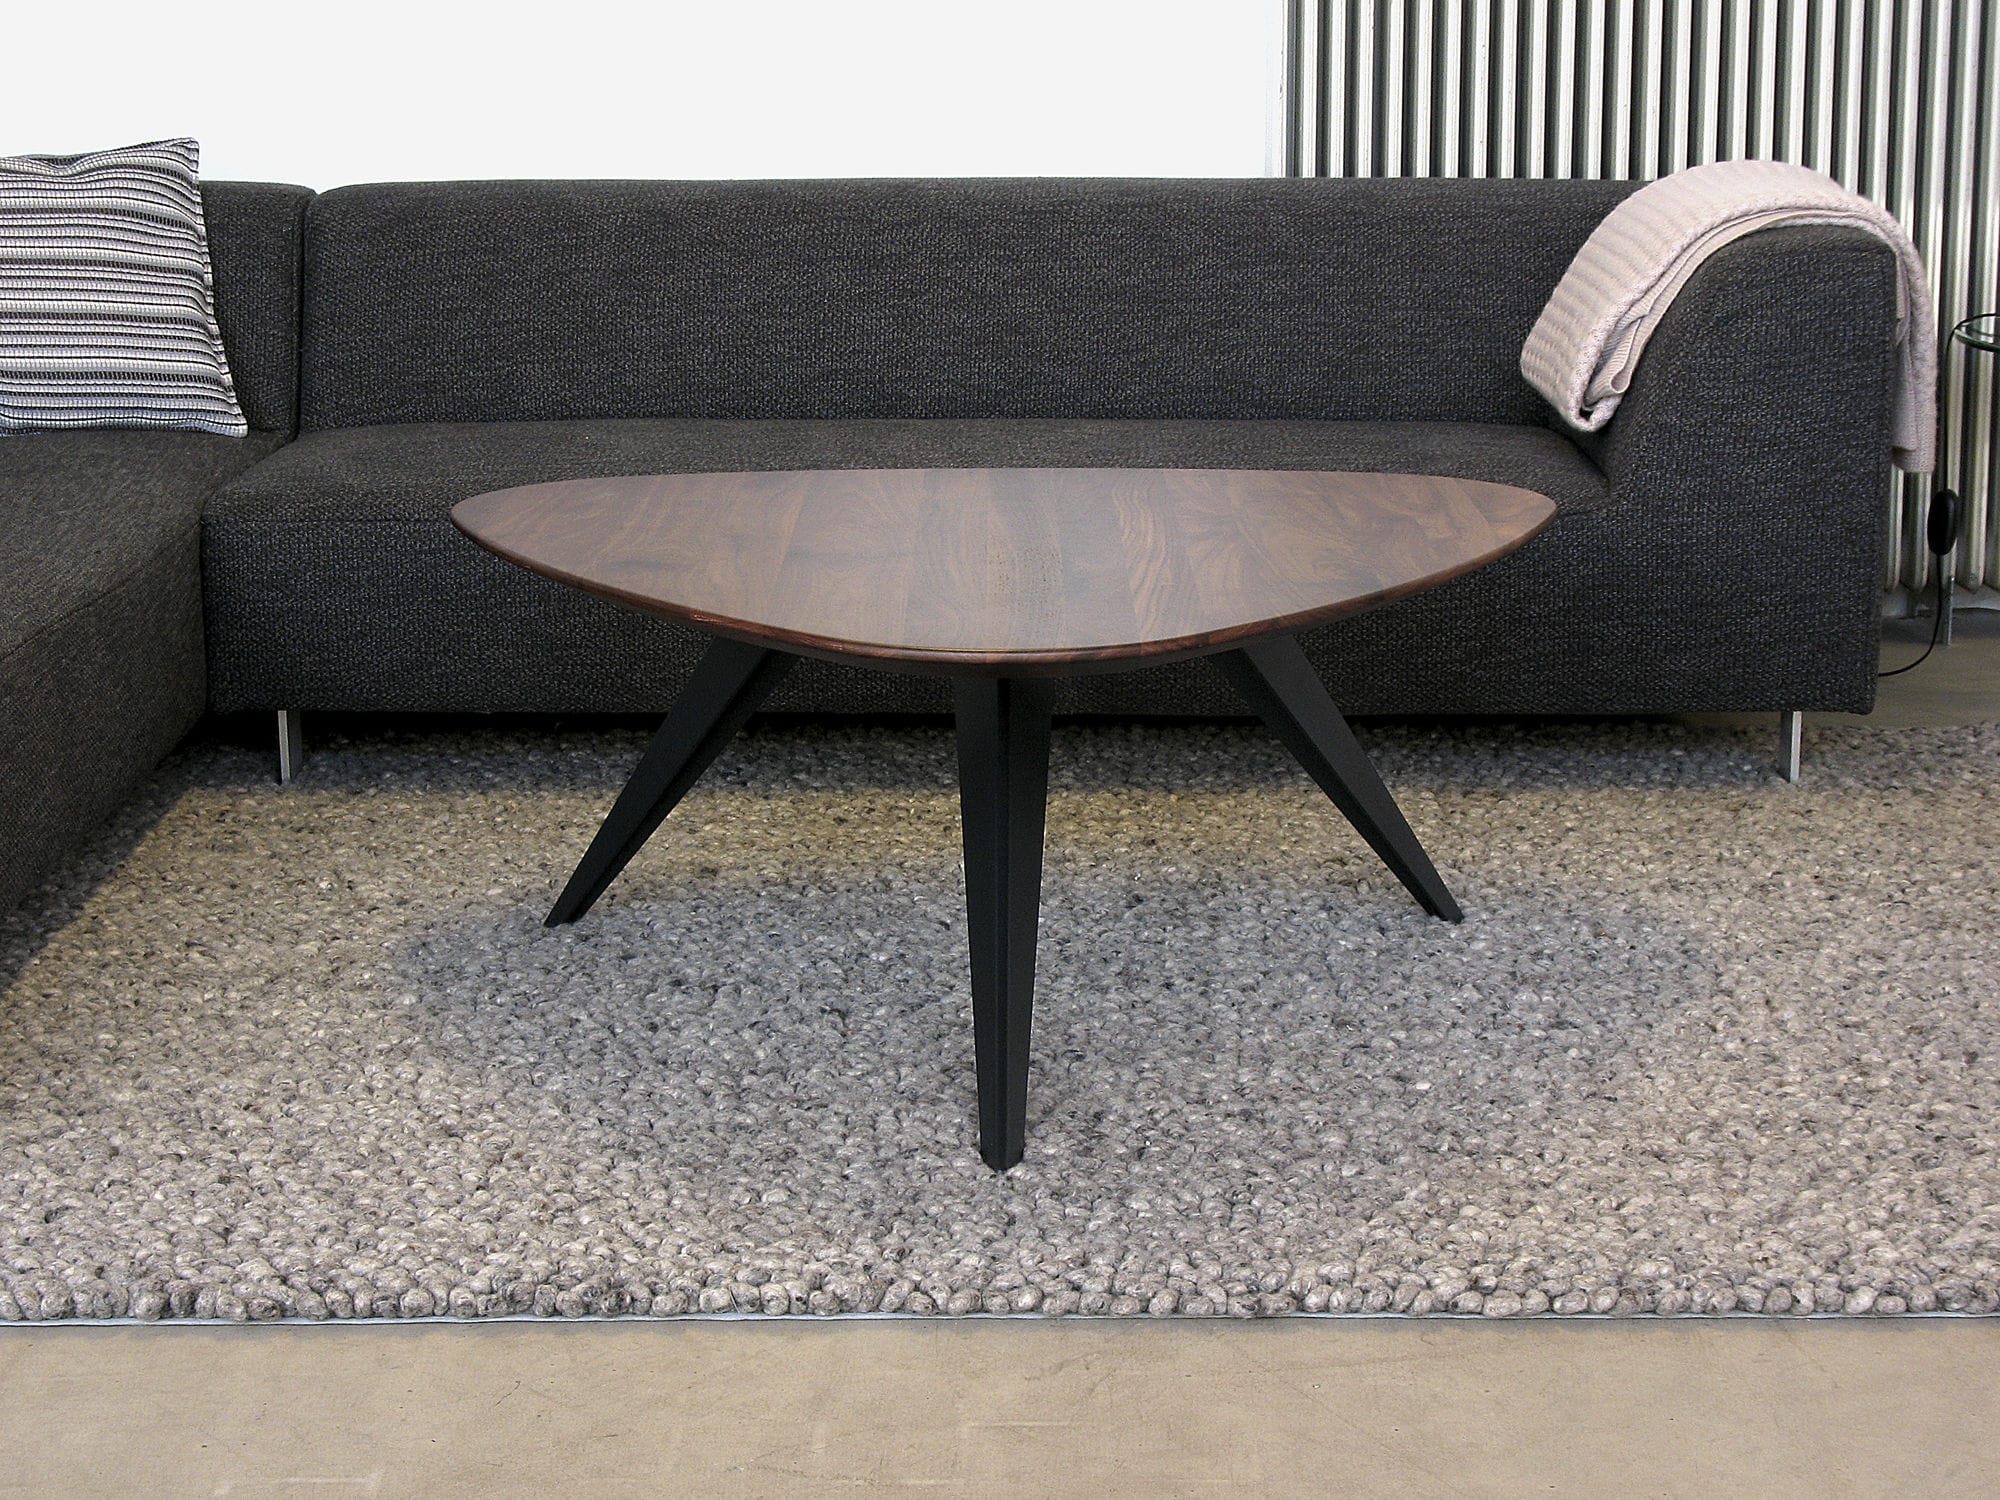 Couchtisch Montain Oak Contemporary Coffee Table Oak Mdf Birch TrouvÉ Lounge By